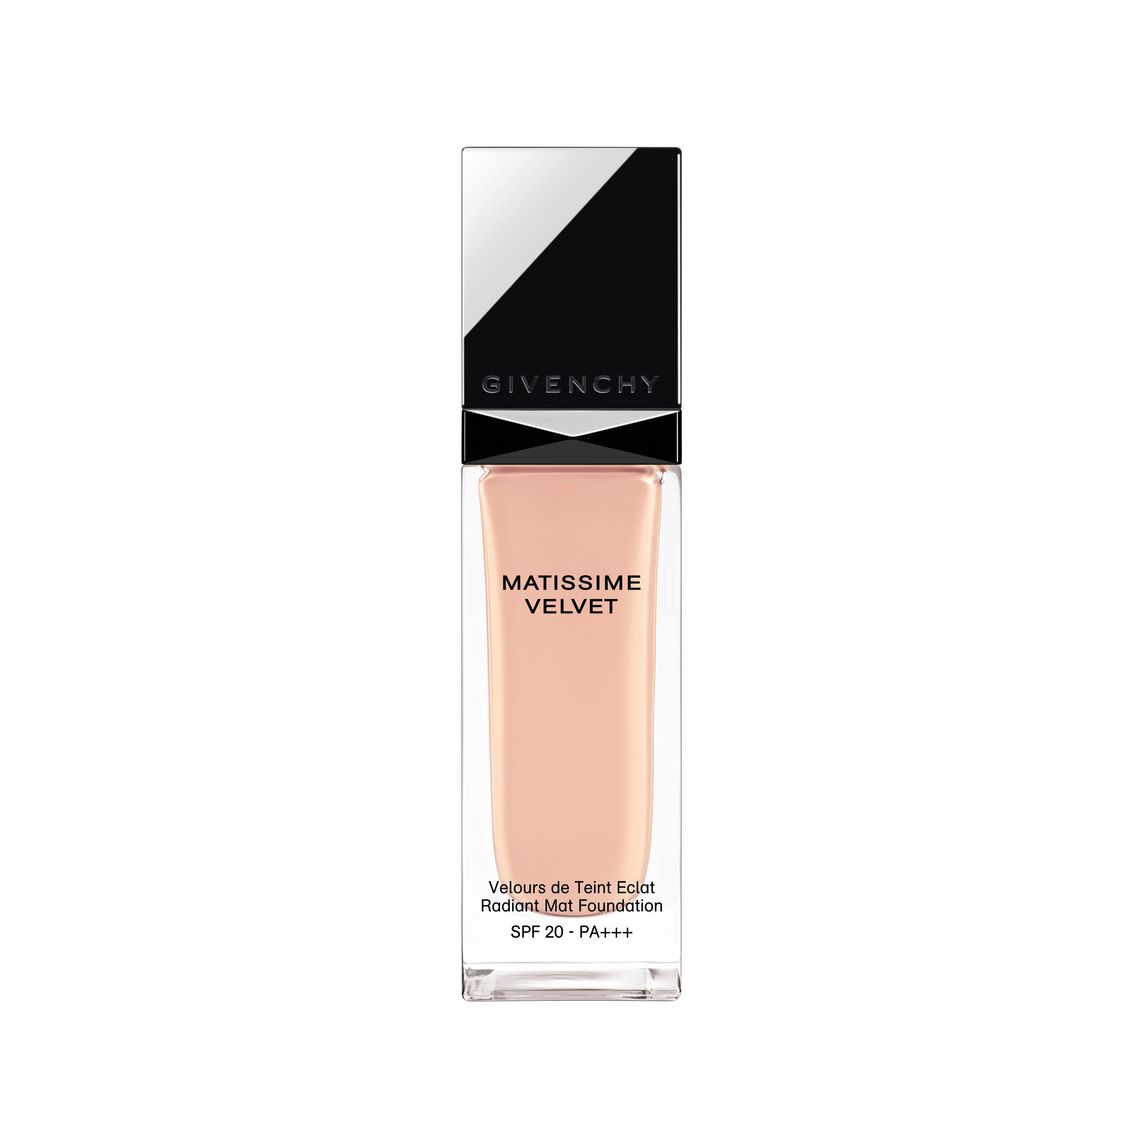 Matissime Velvet Fluid Foundation: Givenchy